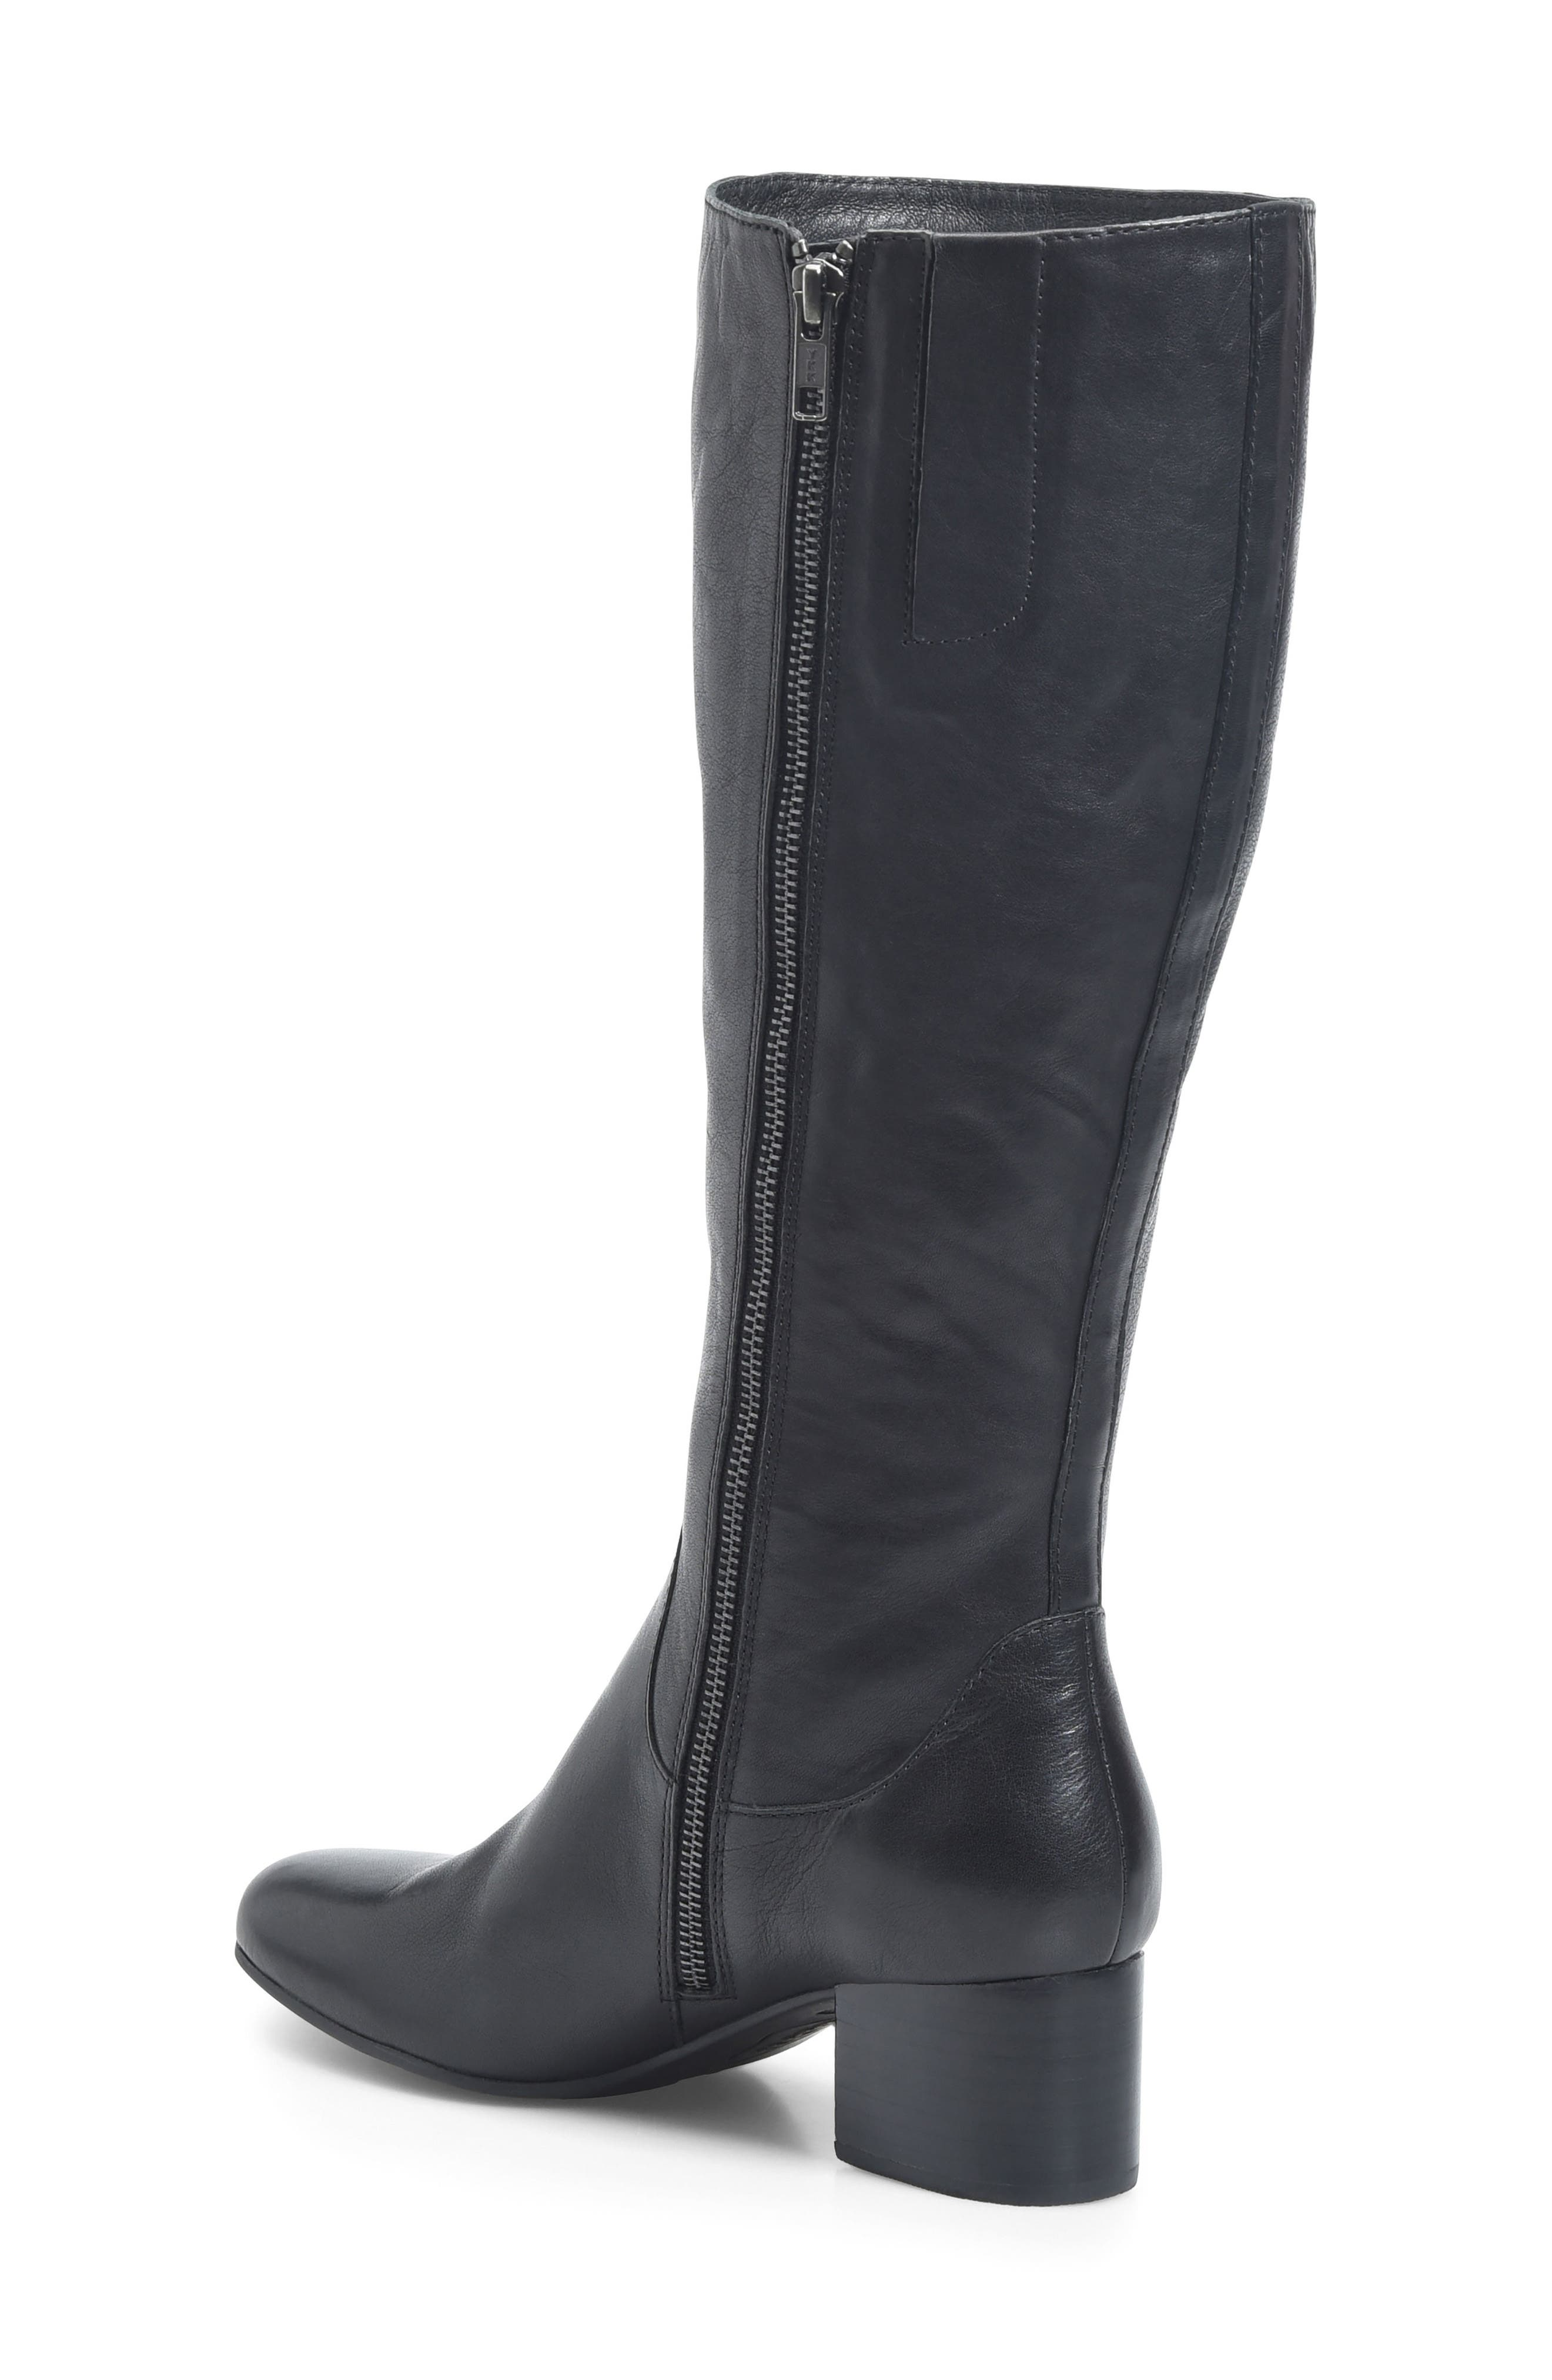 Avala Knee High Boot,                             Alternate thumbnail 2, color,                             Black Leather